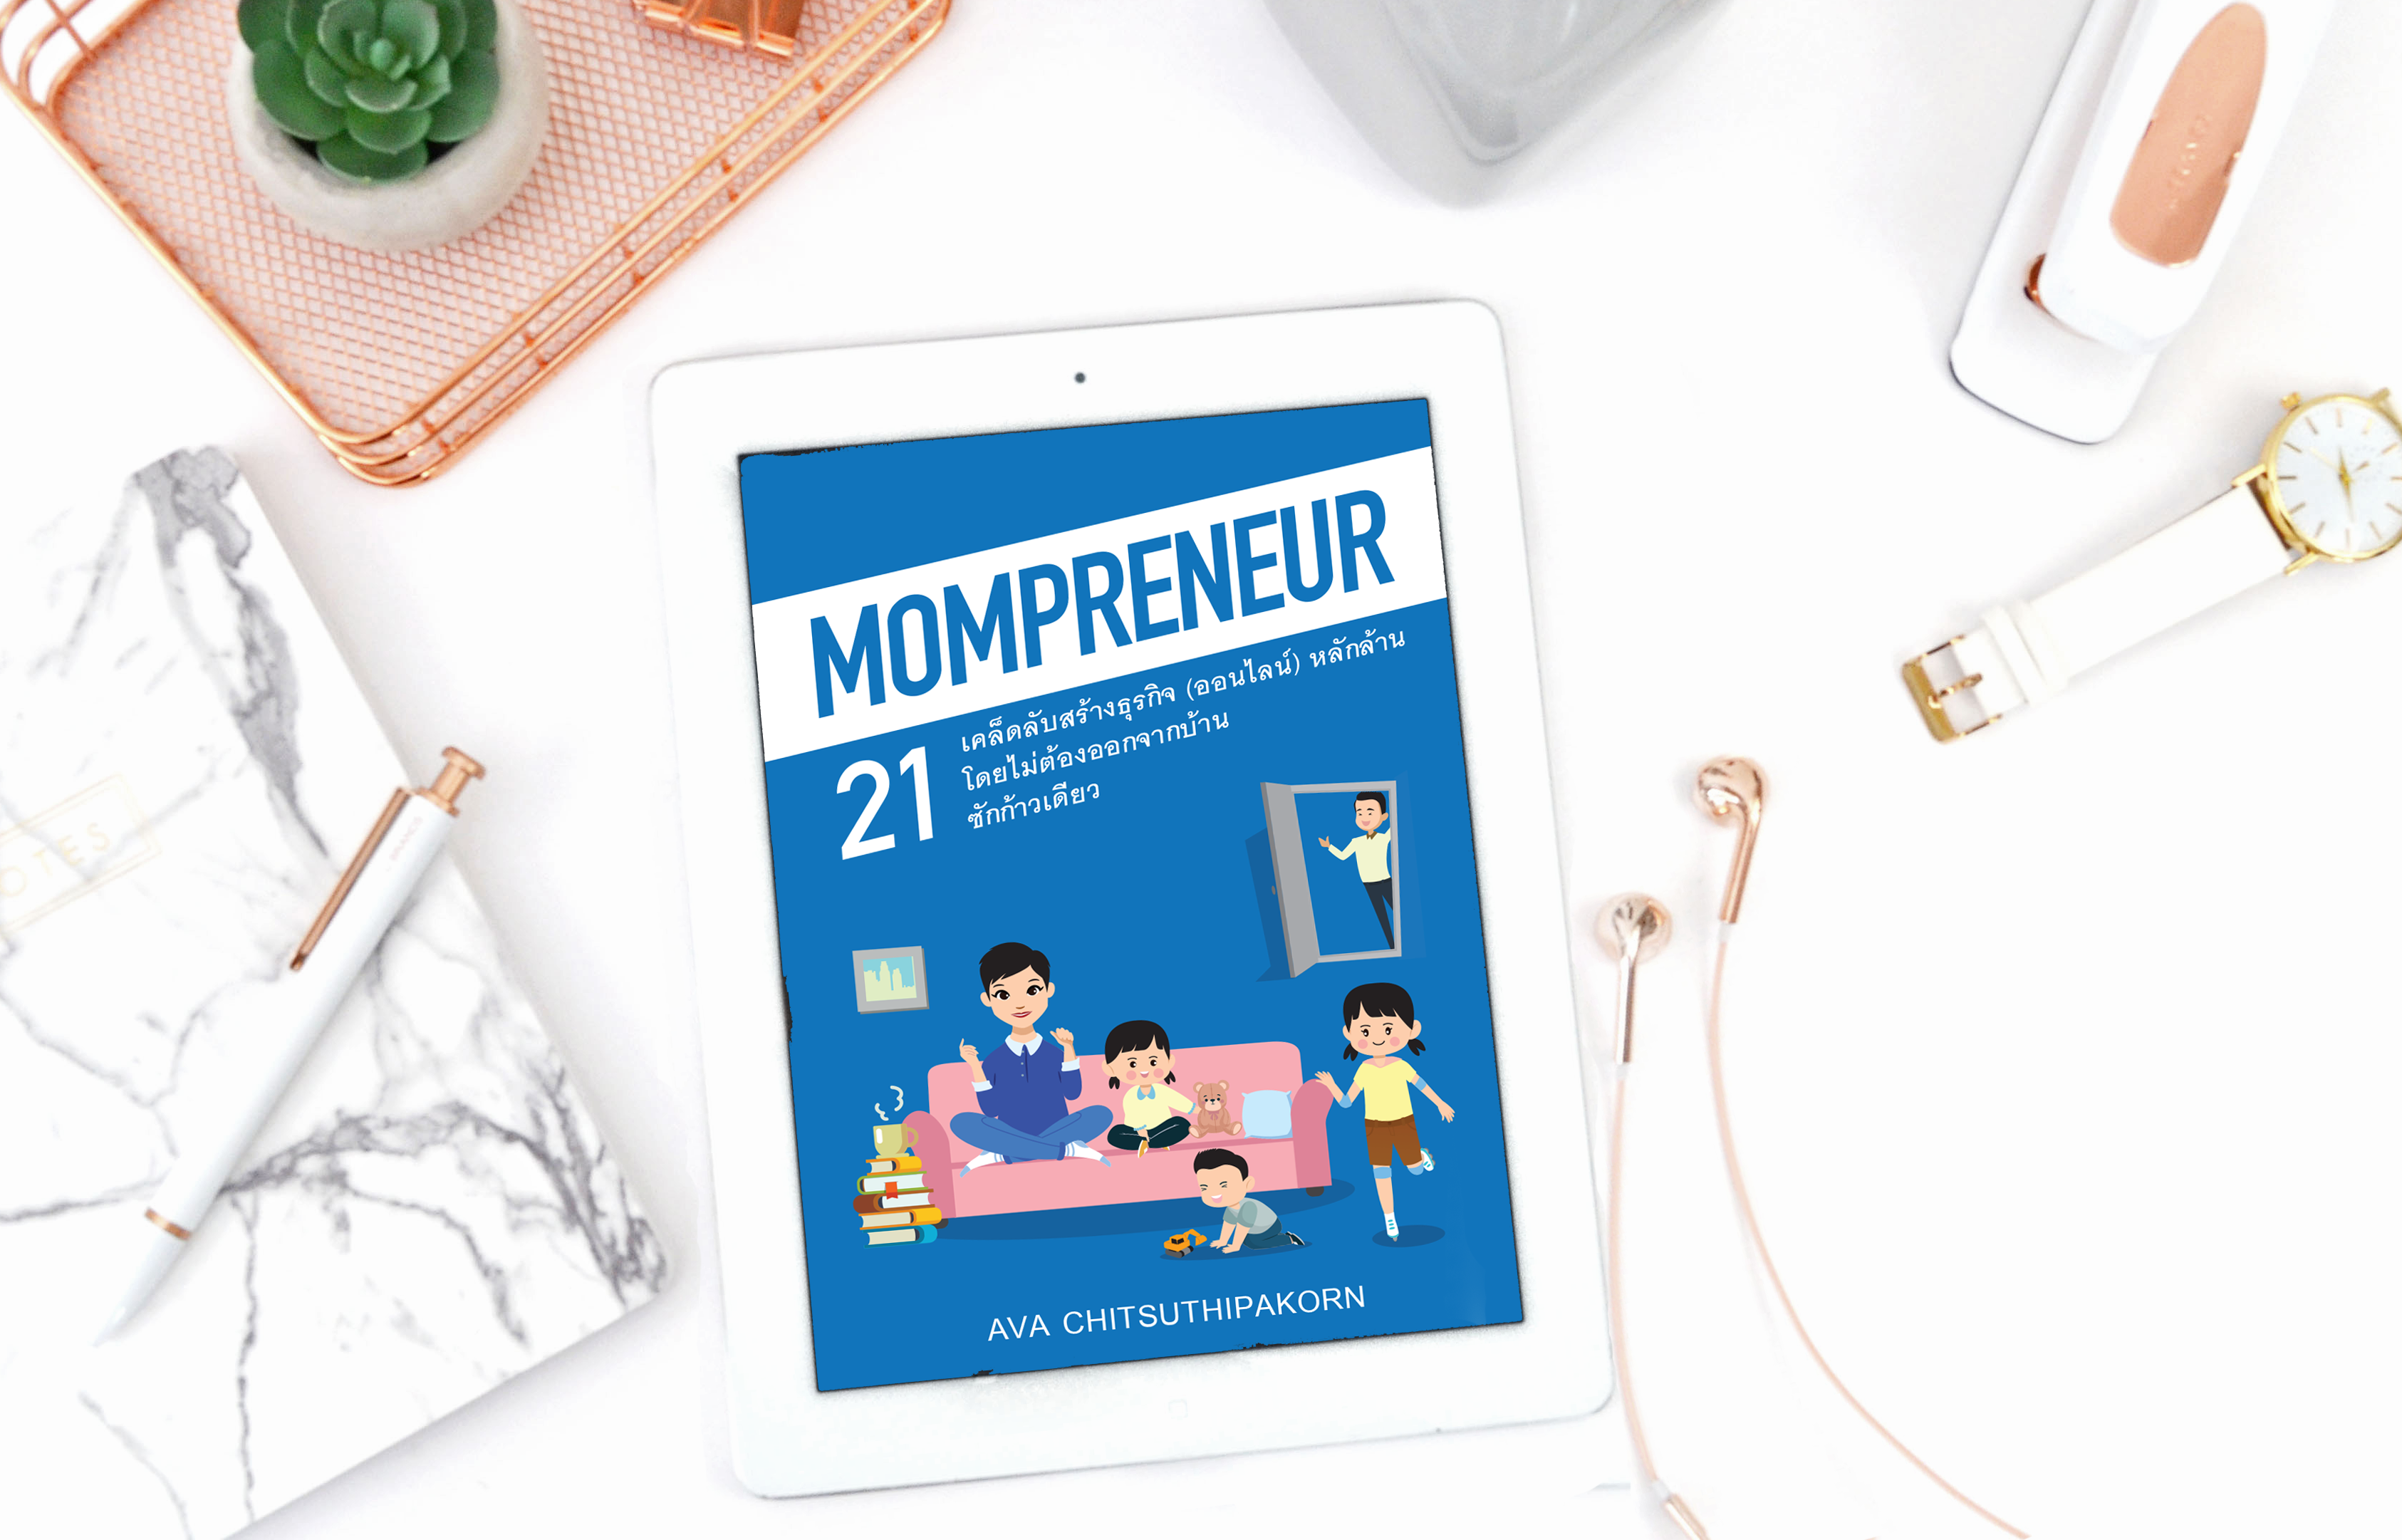 MomPreneur by Ava